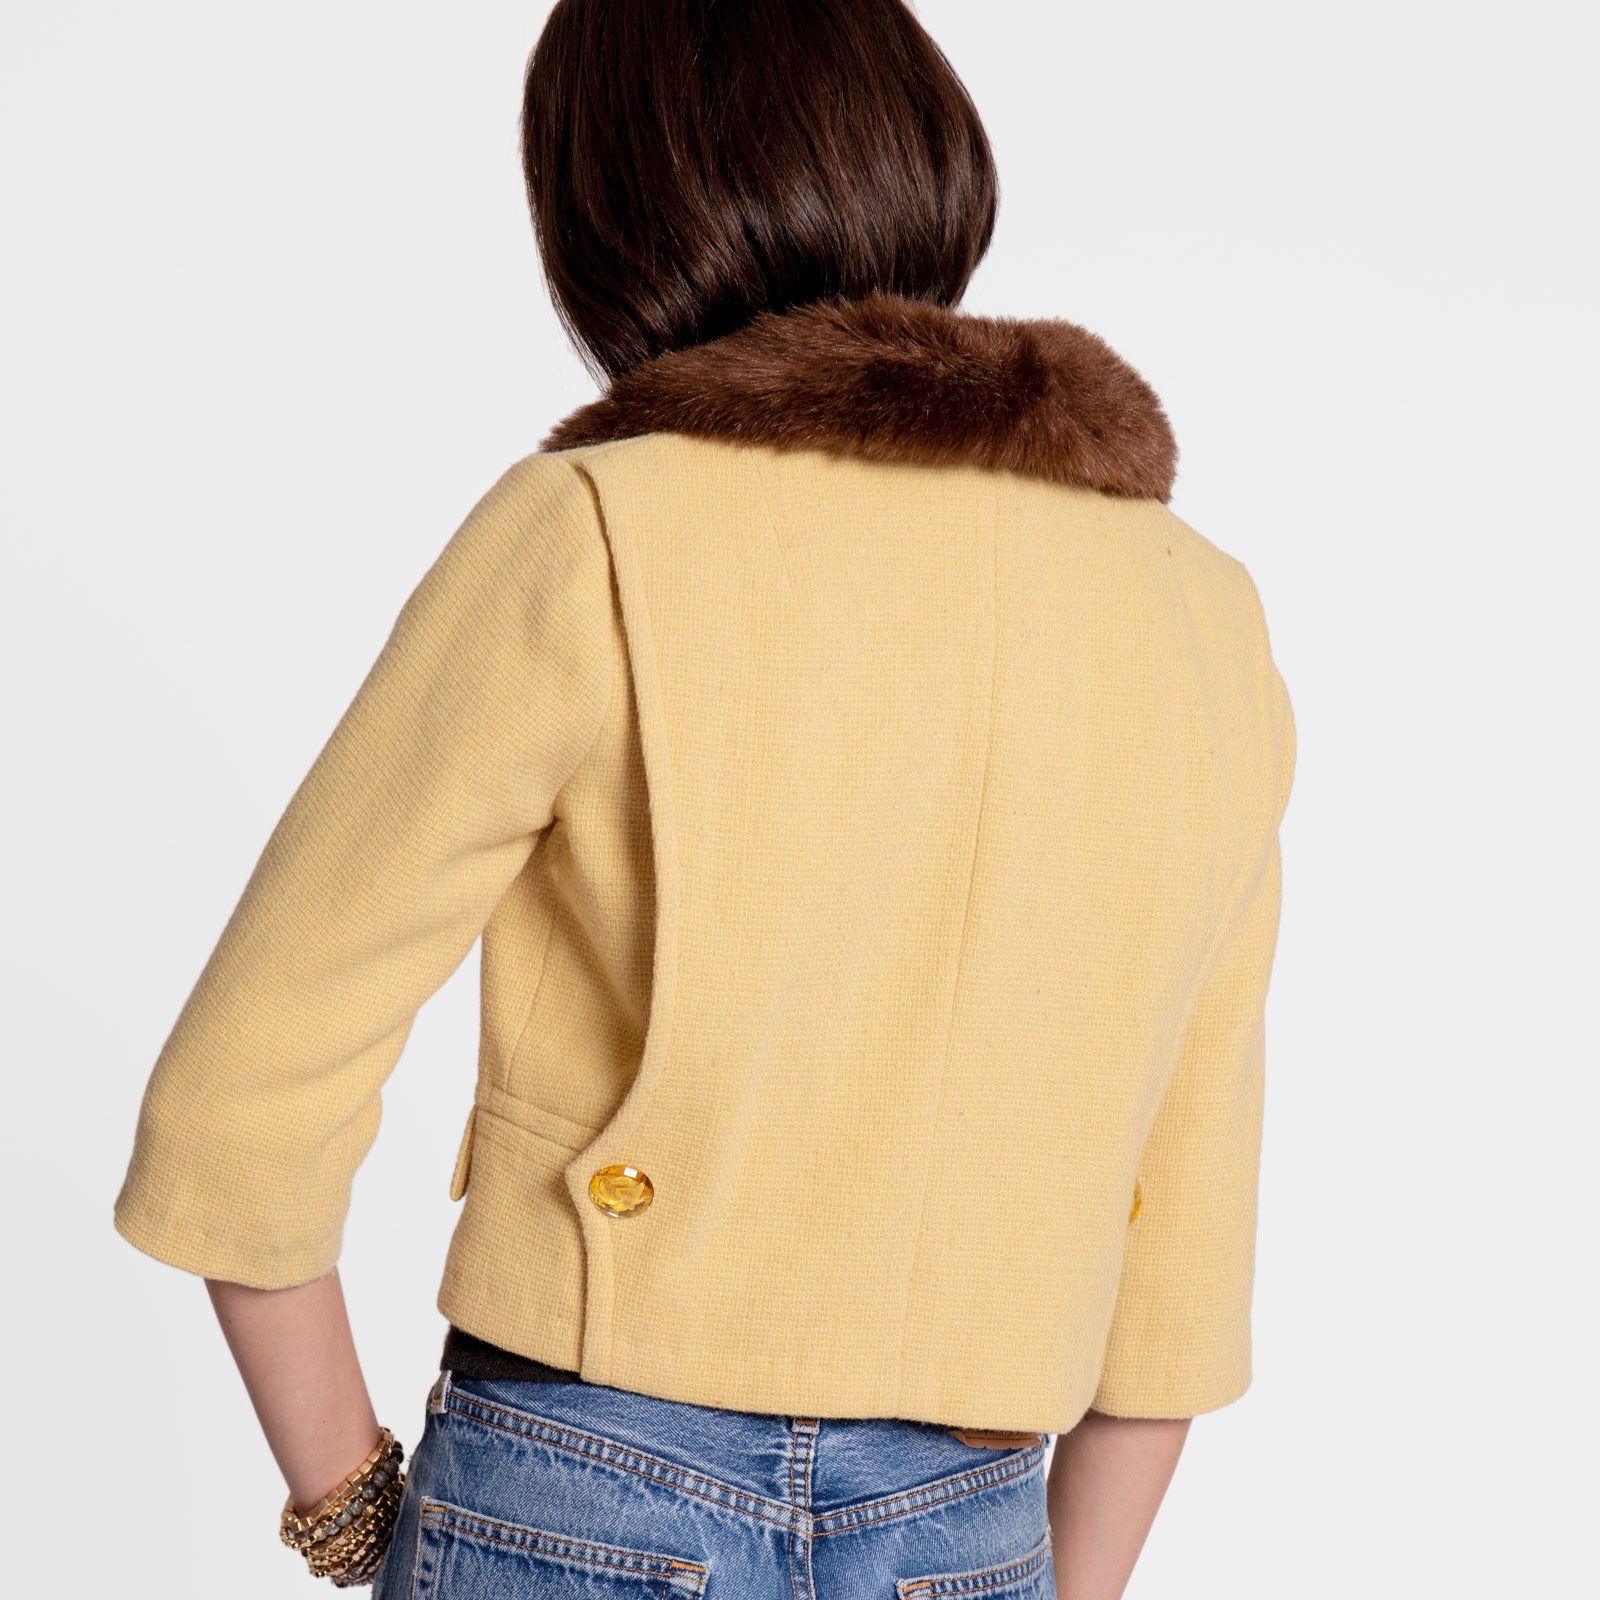 Gigi Lady Jacket Faux Fur Yellow